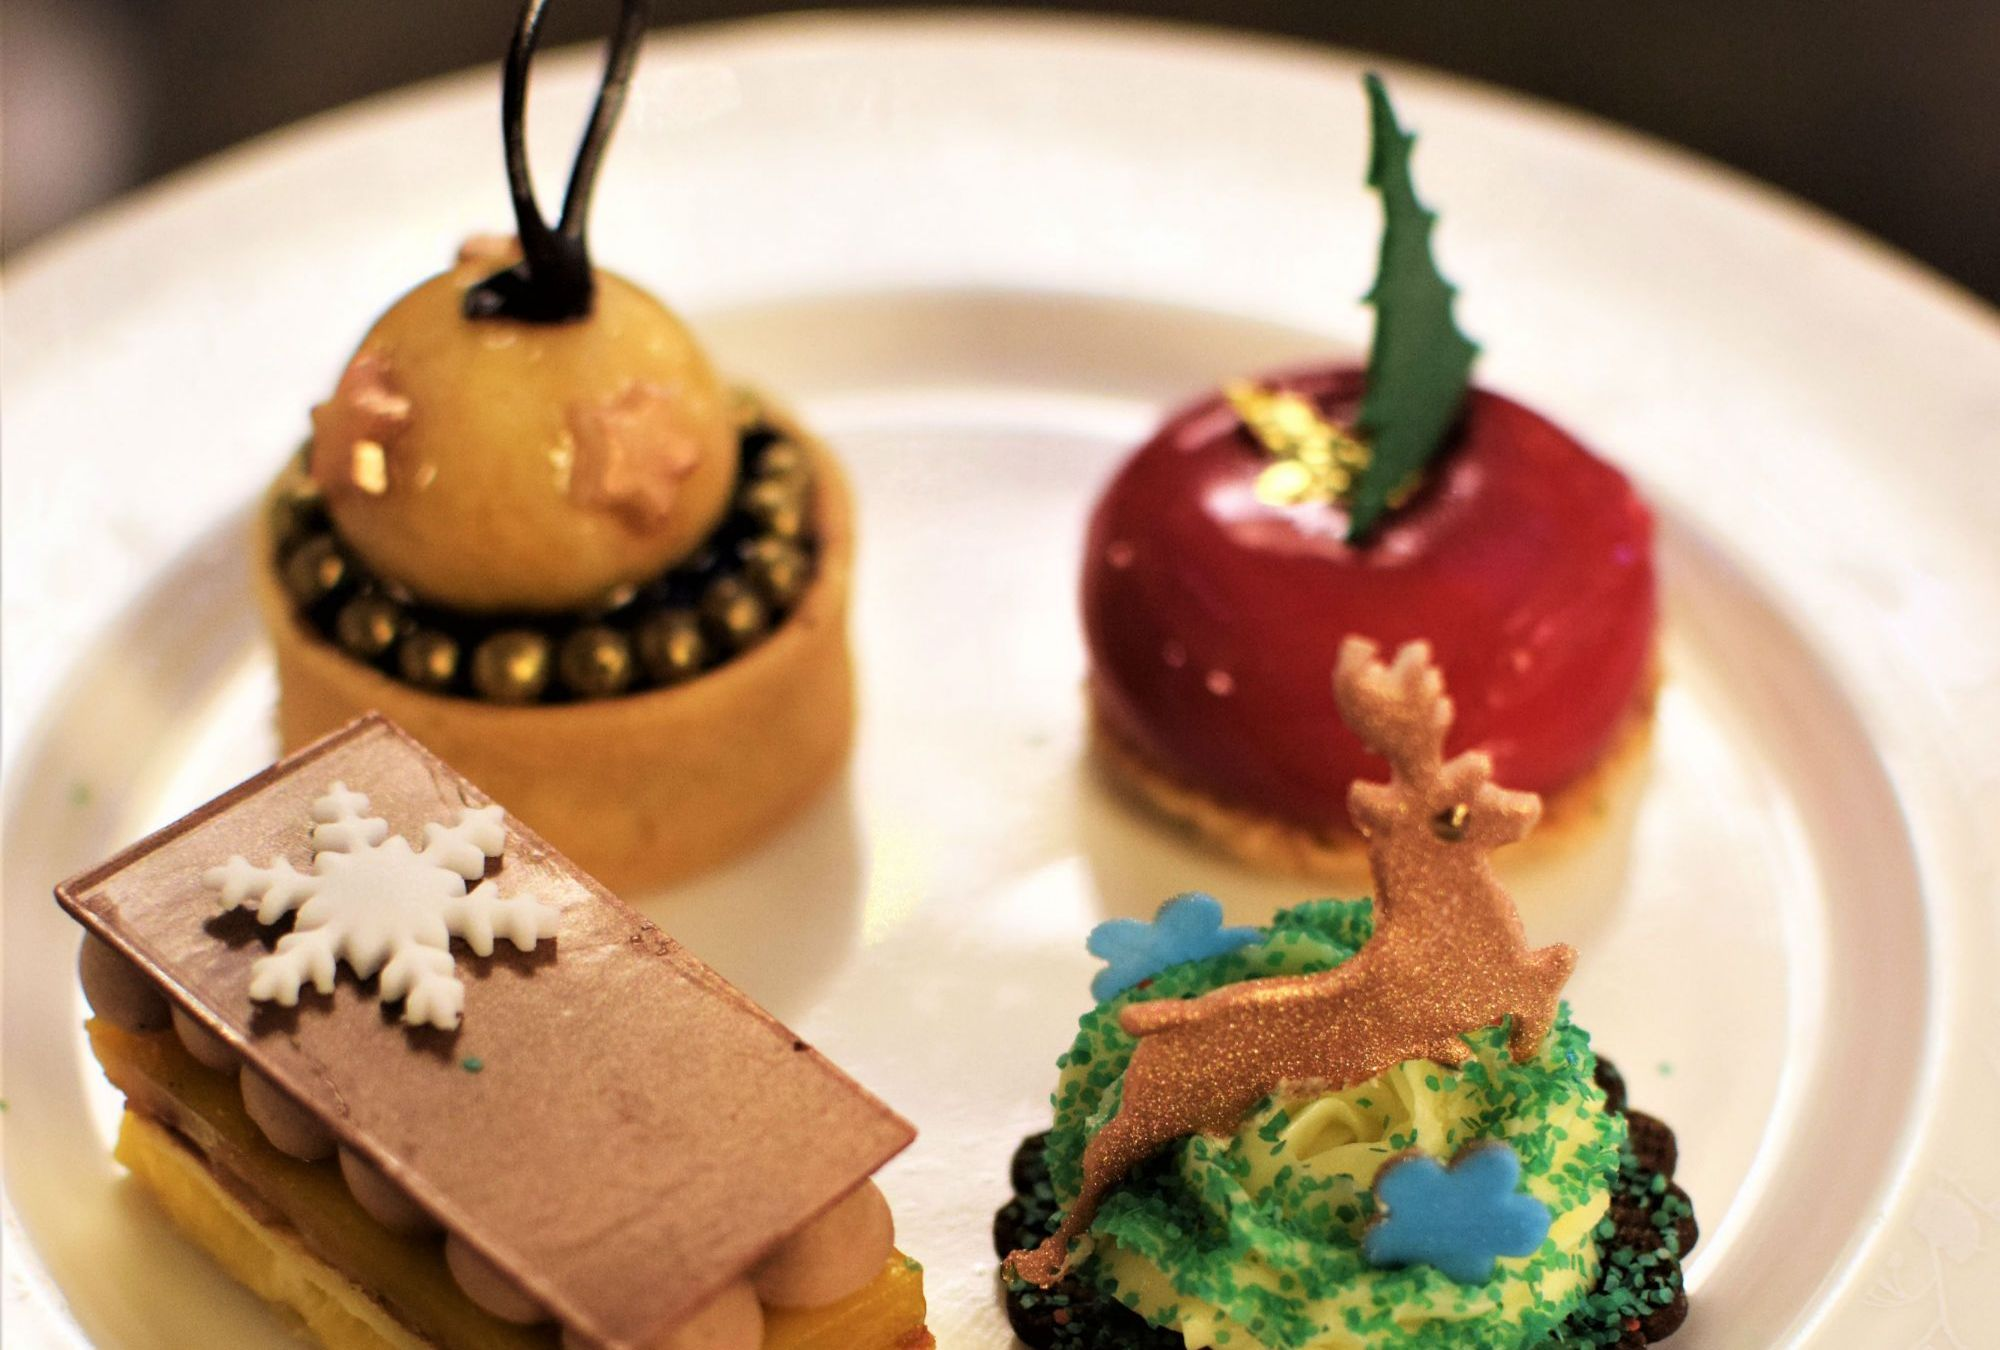 Festive Afternoon Tea in Mayfair | The Palm Court